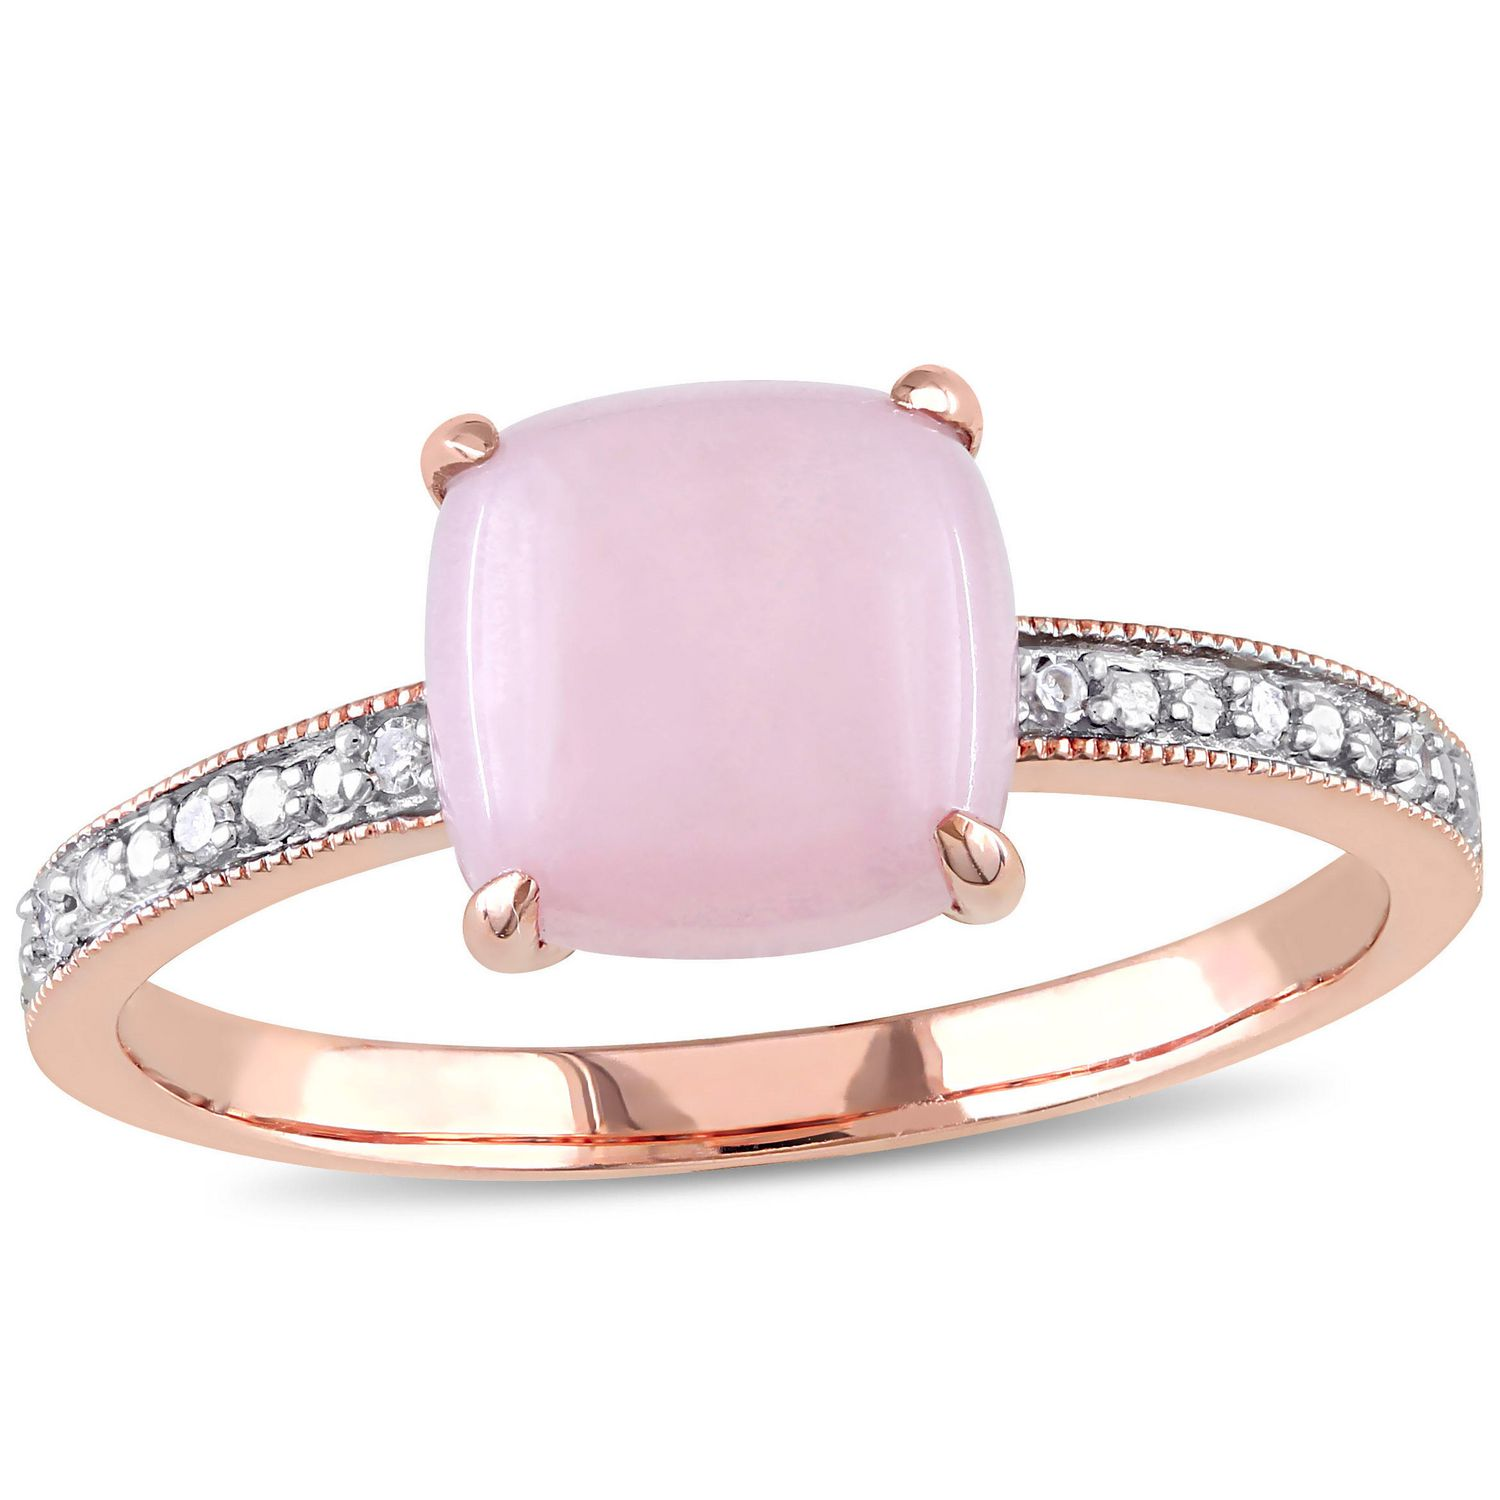 Tangelo 1.33 Carat T.G.W. Pink Opal And Diamond-Accent 10 K Rose ...